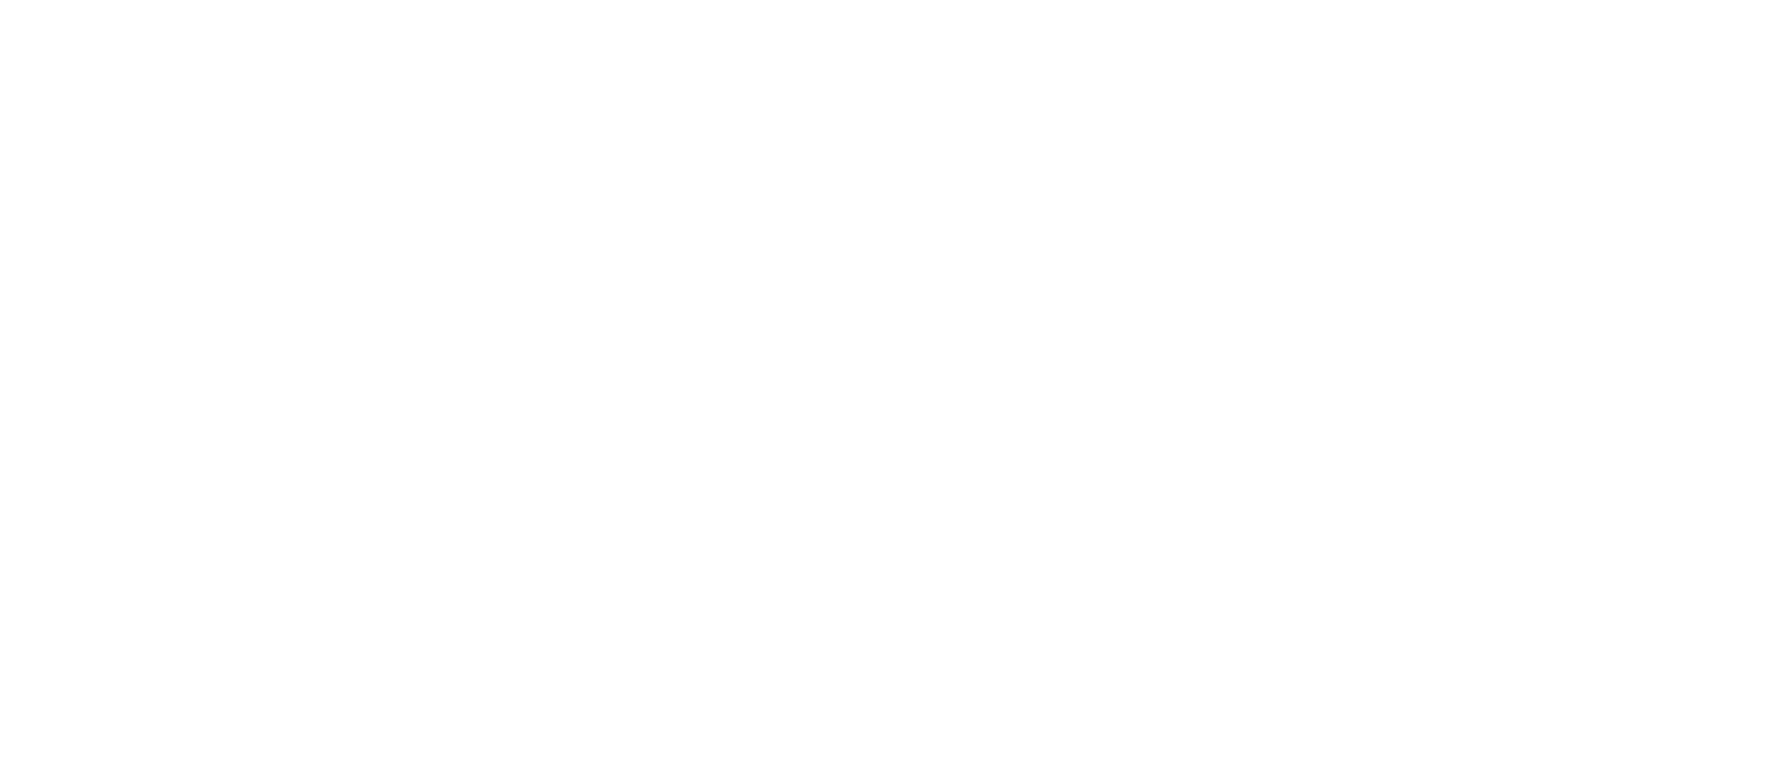 Donkervoort_White.png